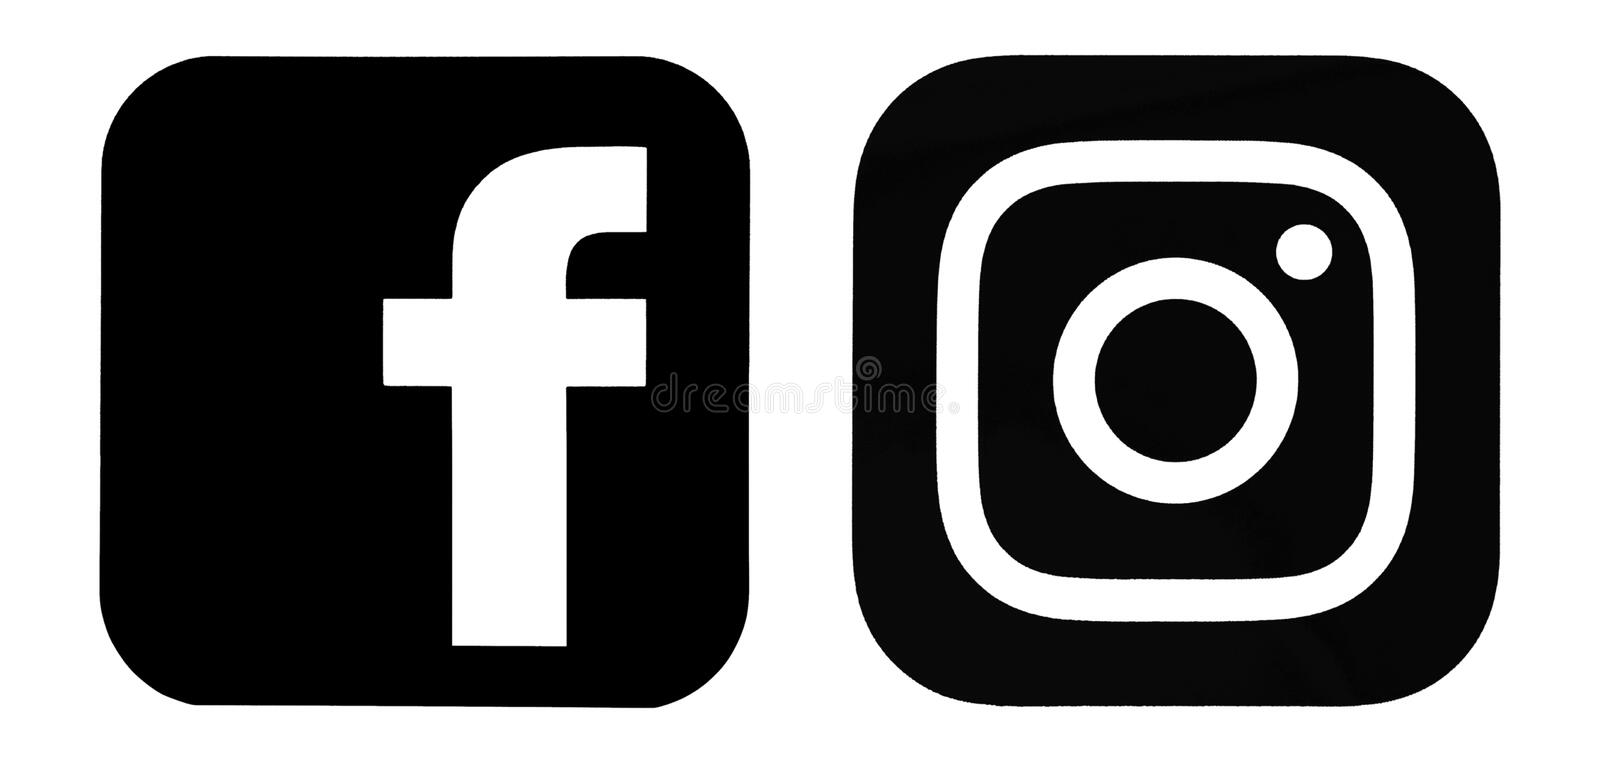 Ensemble de logos de Facebook et d'Instagram illustration libre de droits